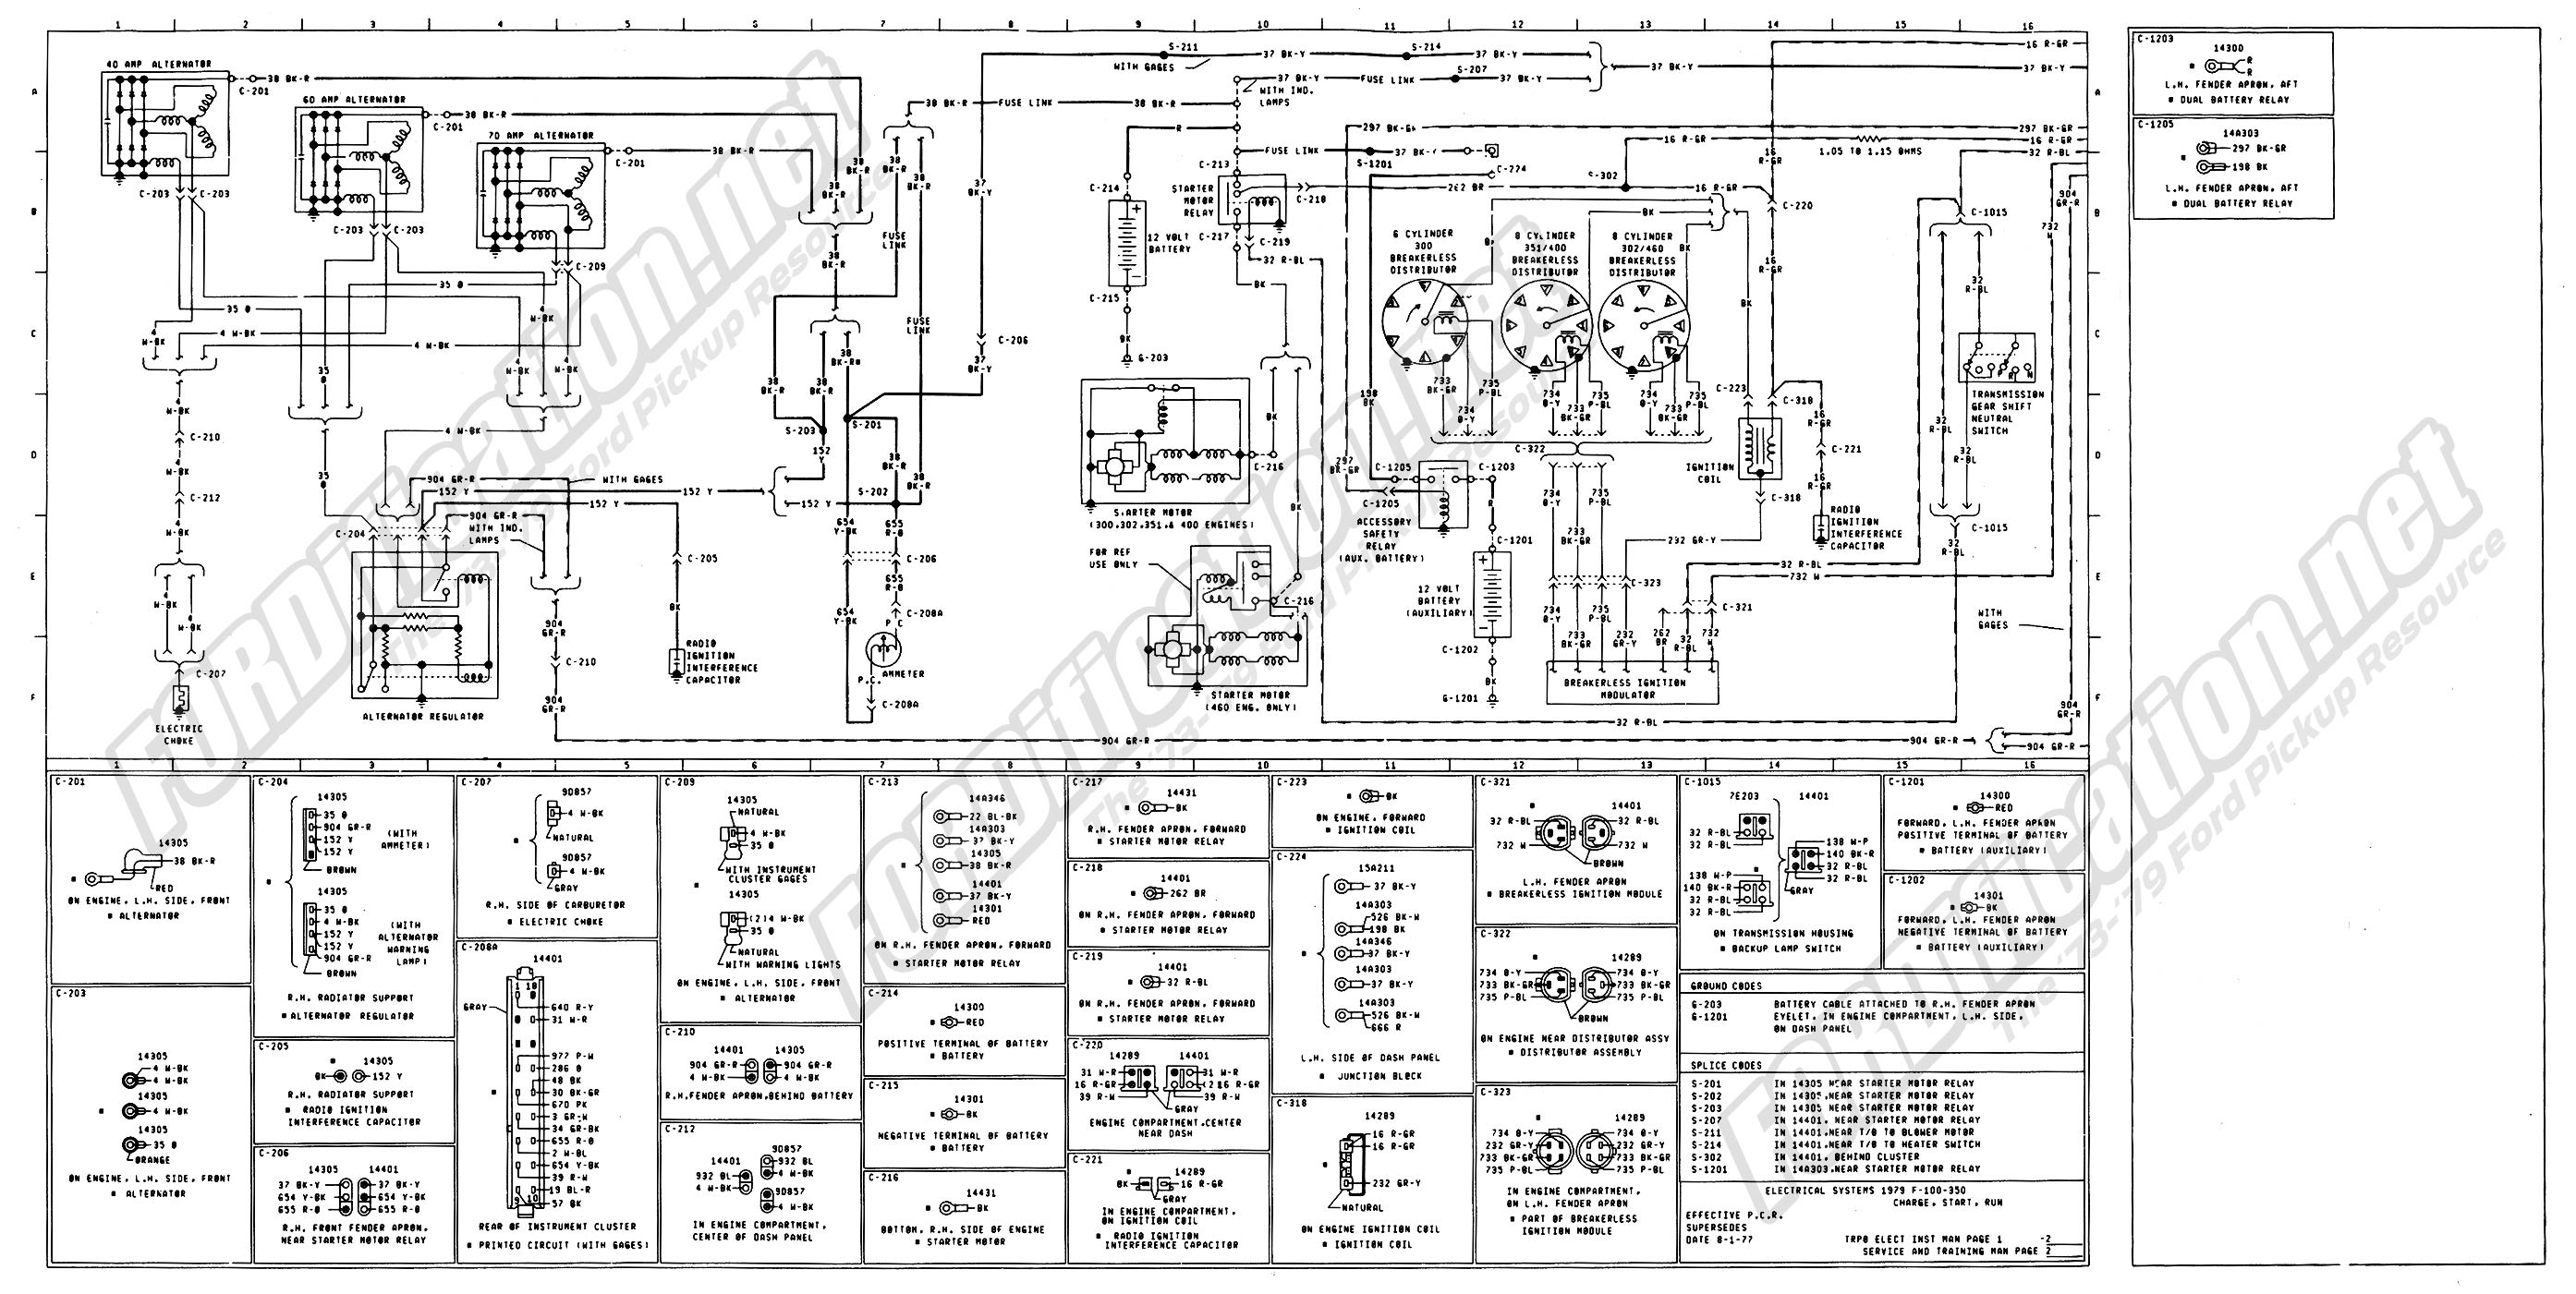 Surprising Bronco Ii Wiring Diagram Basic Electronics Wiring Diagram Wiring Cloud Ittabisraaidewilluminateatxorg